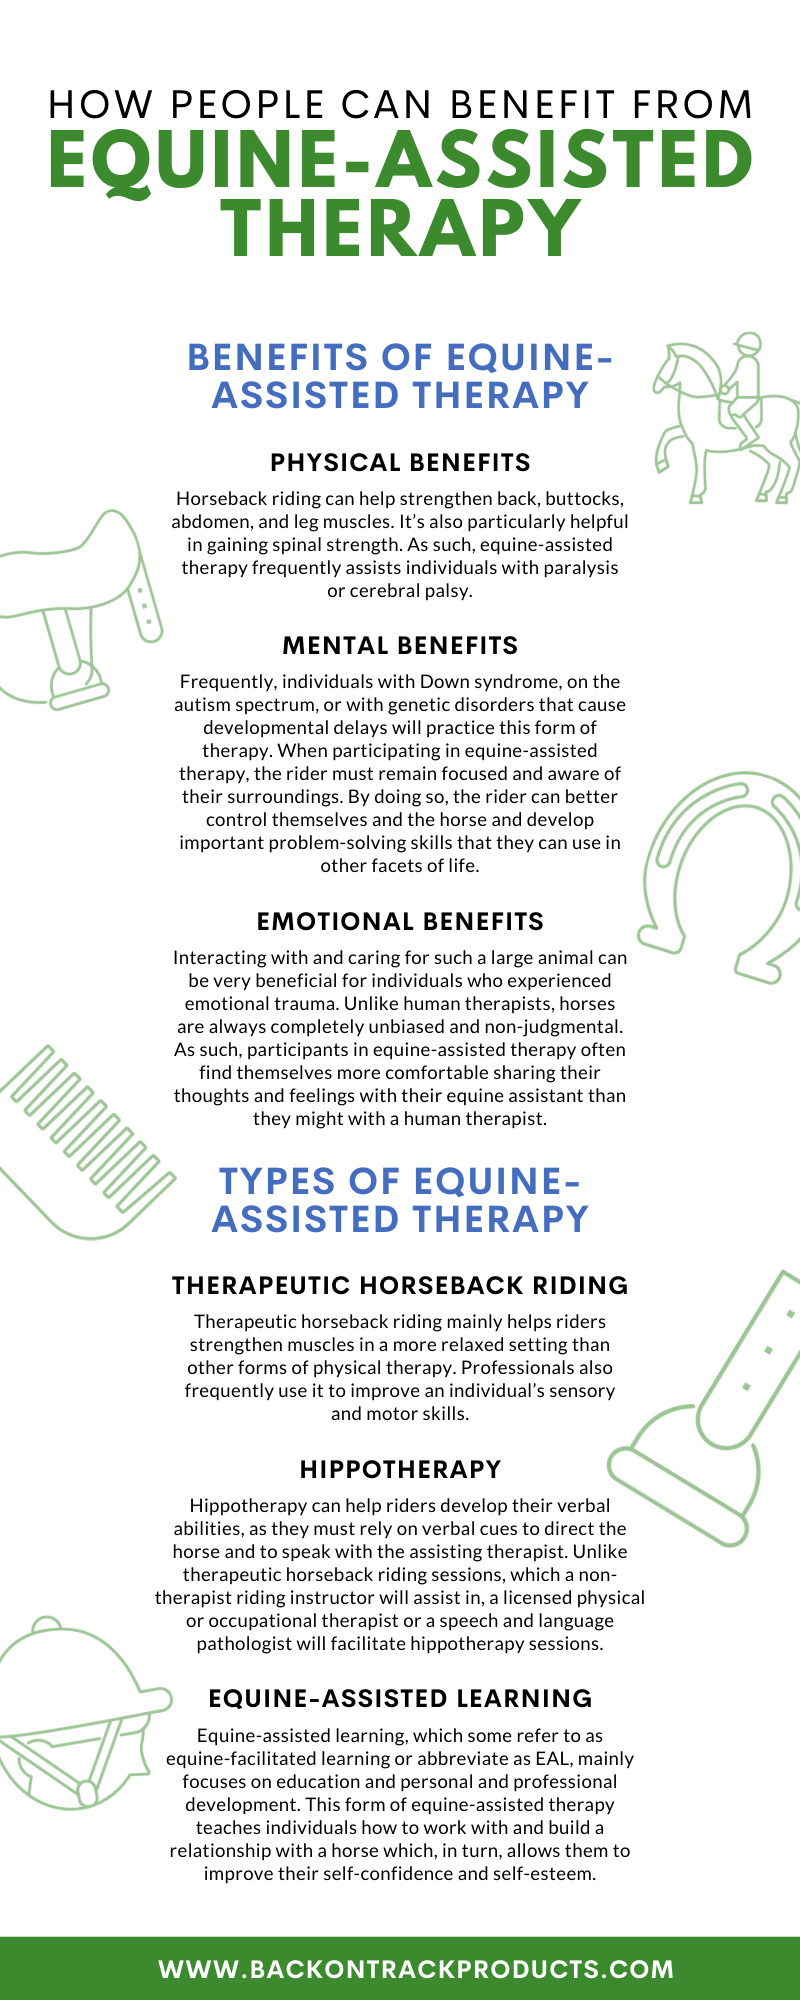 How People Can Benefit from Equine-Assisted Therapy infographic